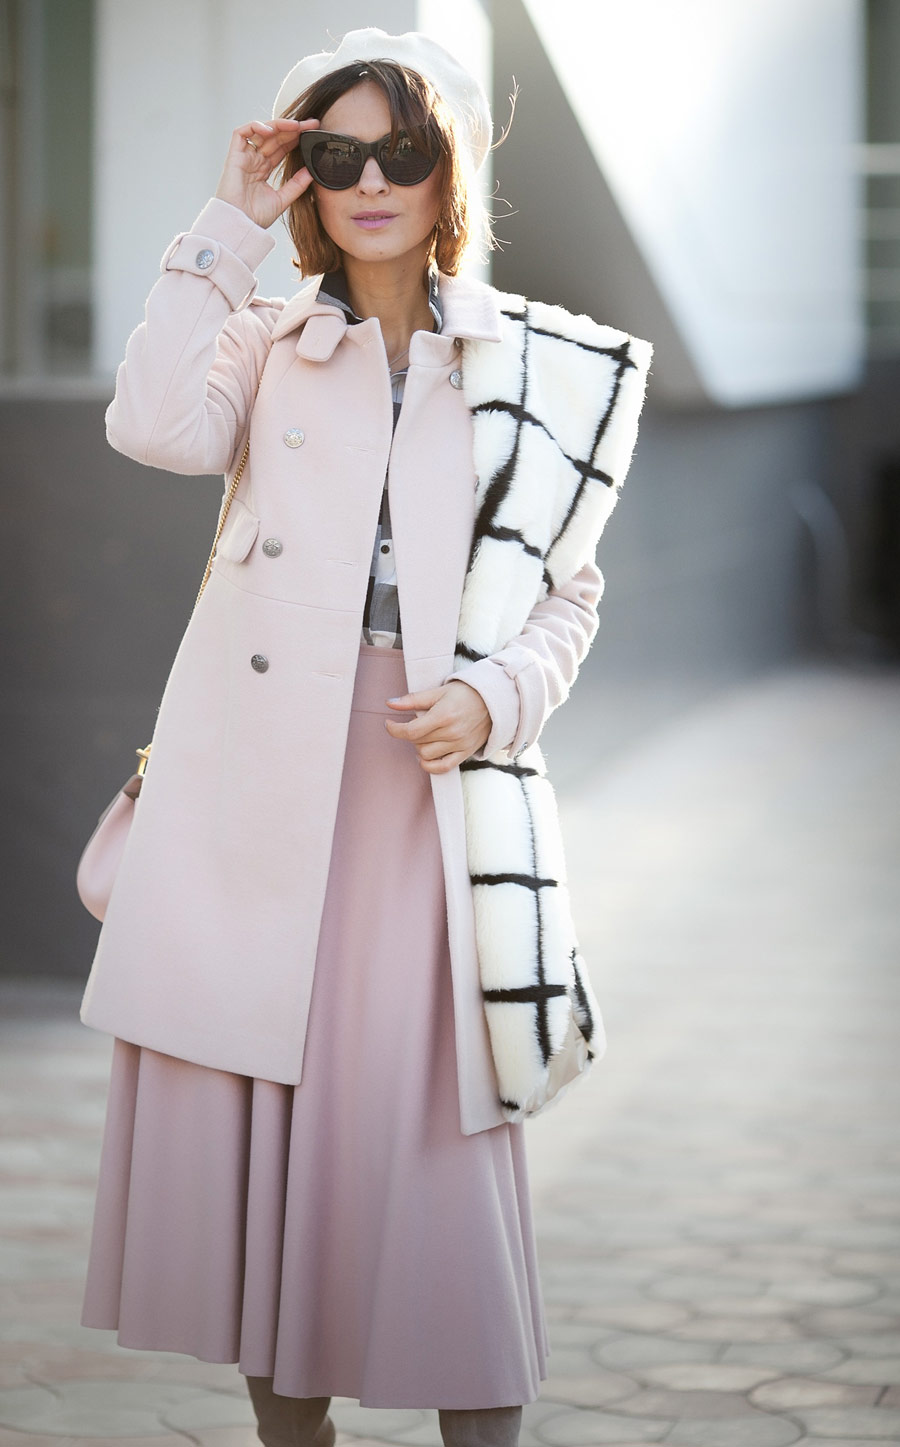 blush coat outfit, blush skirt outfit, rose quartz total outfit, fall outfits, faux fur scarf, wool beret outfit, Ellena Galant, Елена Галант, лук в пастельных тонах, розовое пальто,